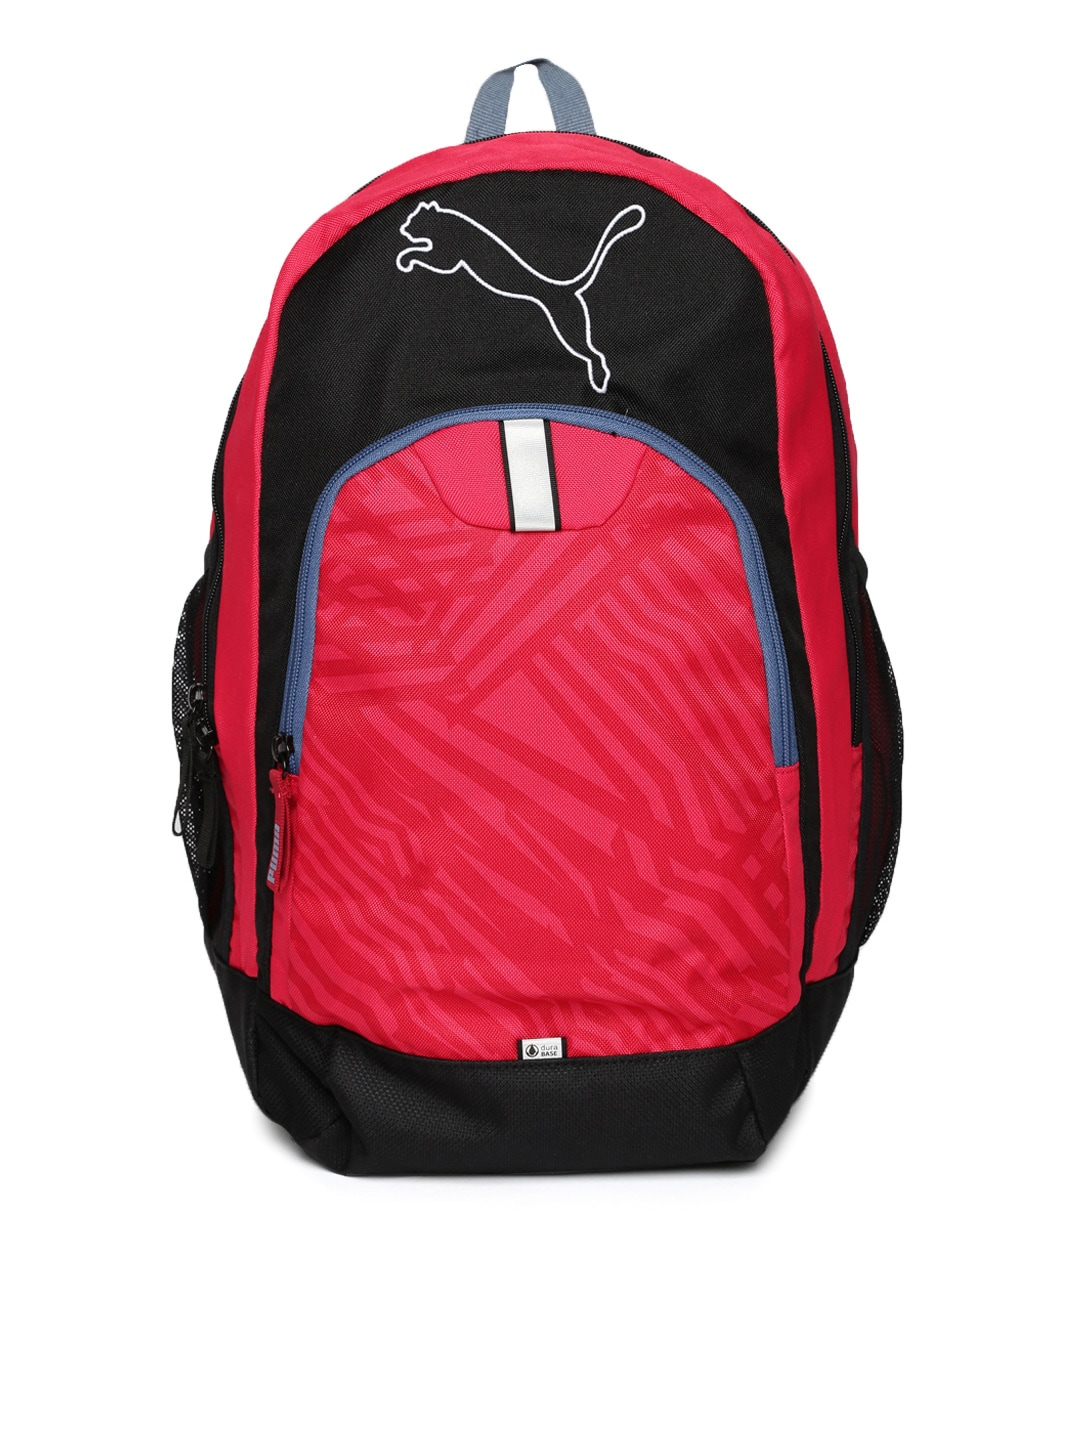 Puma 7378804 Unisex Pink And Black Printed Echo Plus Backpack- Price in  India 0783be08831b7